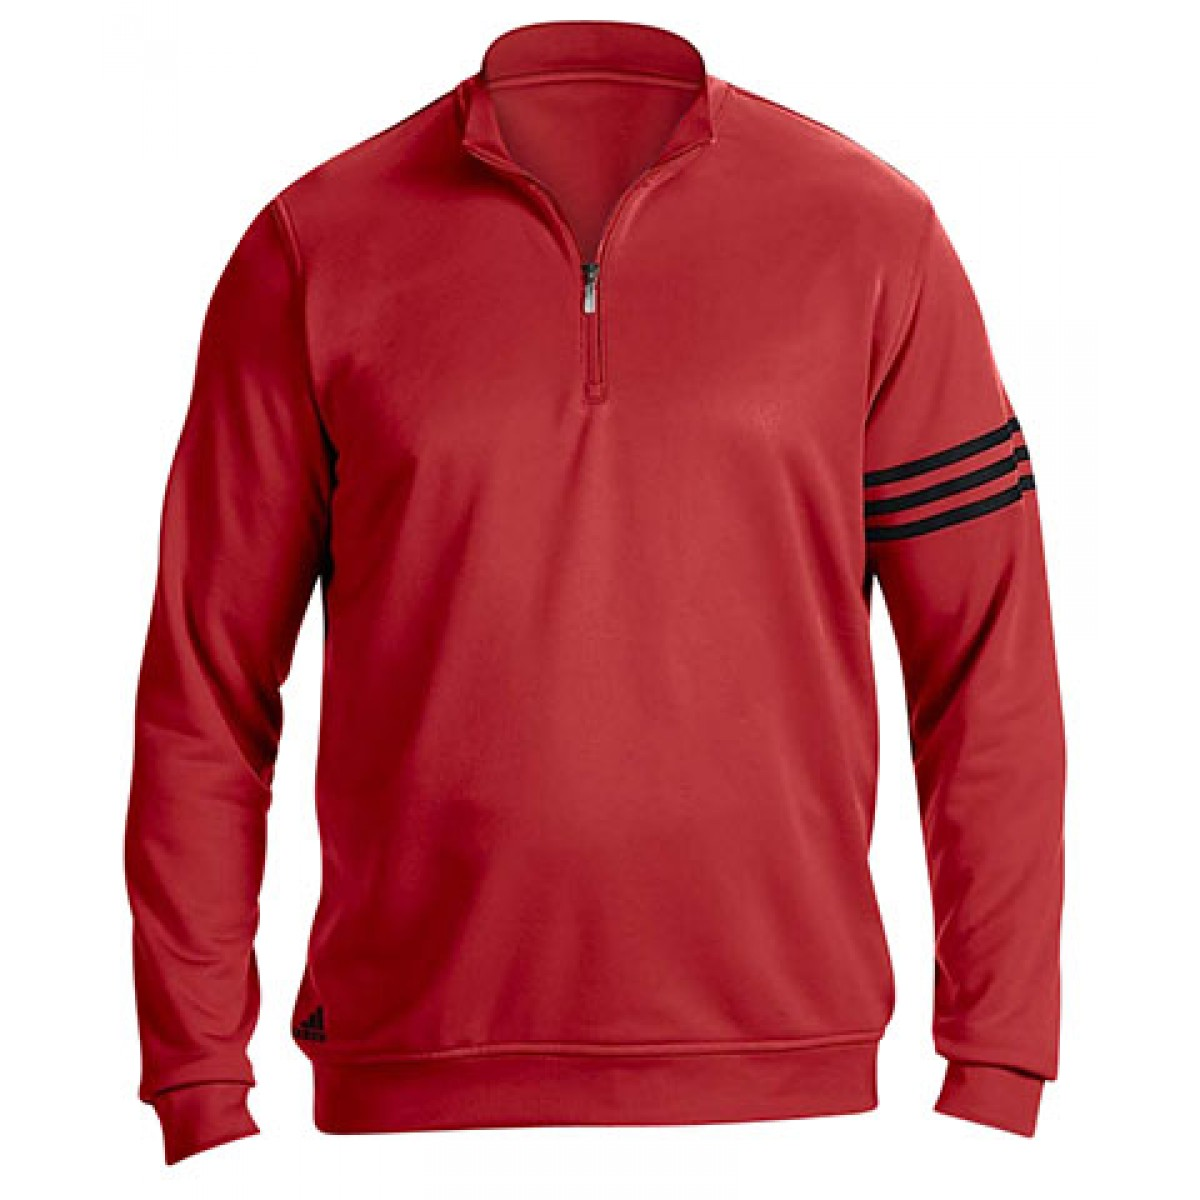 Adidas Men's 3-Stripes Pullover-Red-S